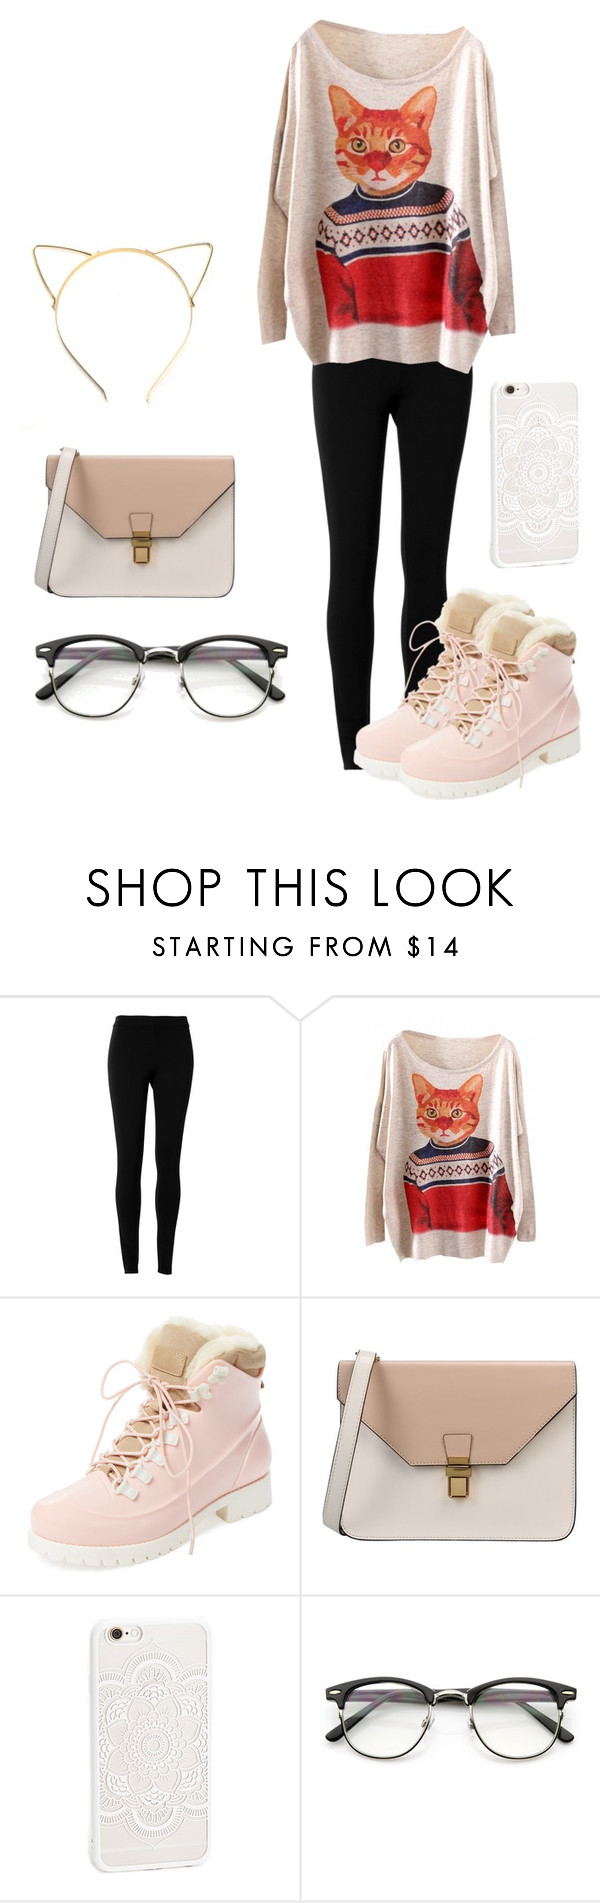 """Meow"" by geecat on Polyvore featuring Max Studio, WithChic, Australia Luxe Collective and 8"